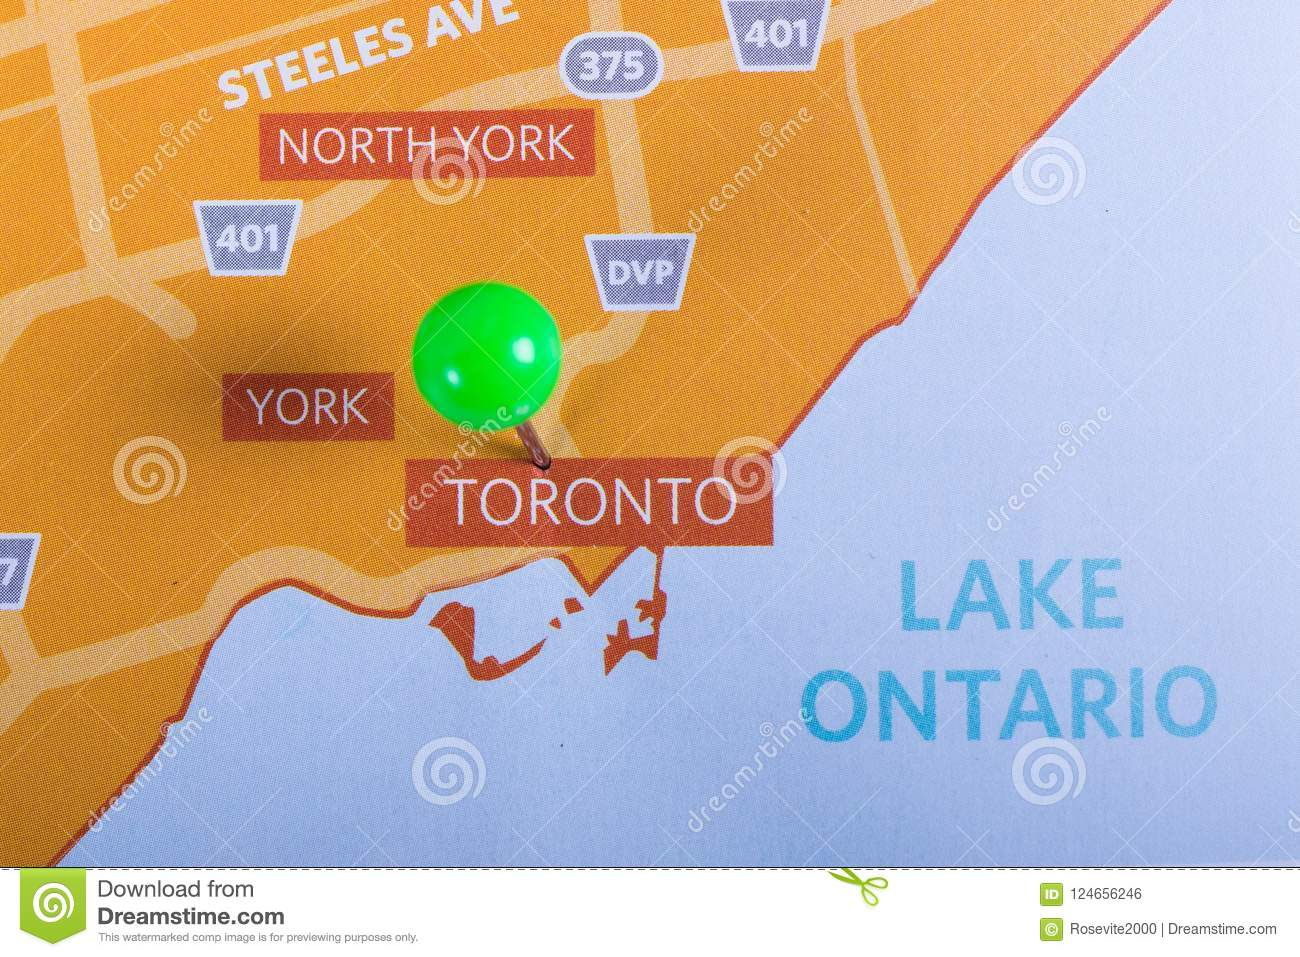 Map Of Canada Toronto Ontario.Grater Toronto Area With Lake Ontario Map Stock Photo Image Of